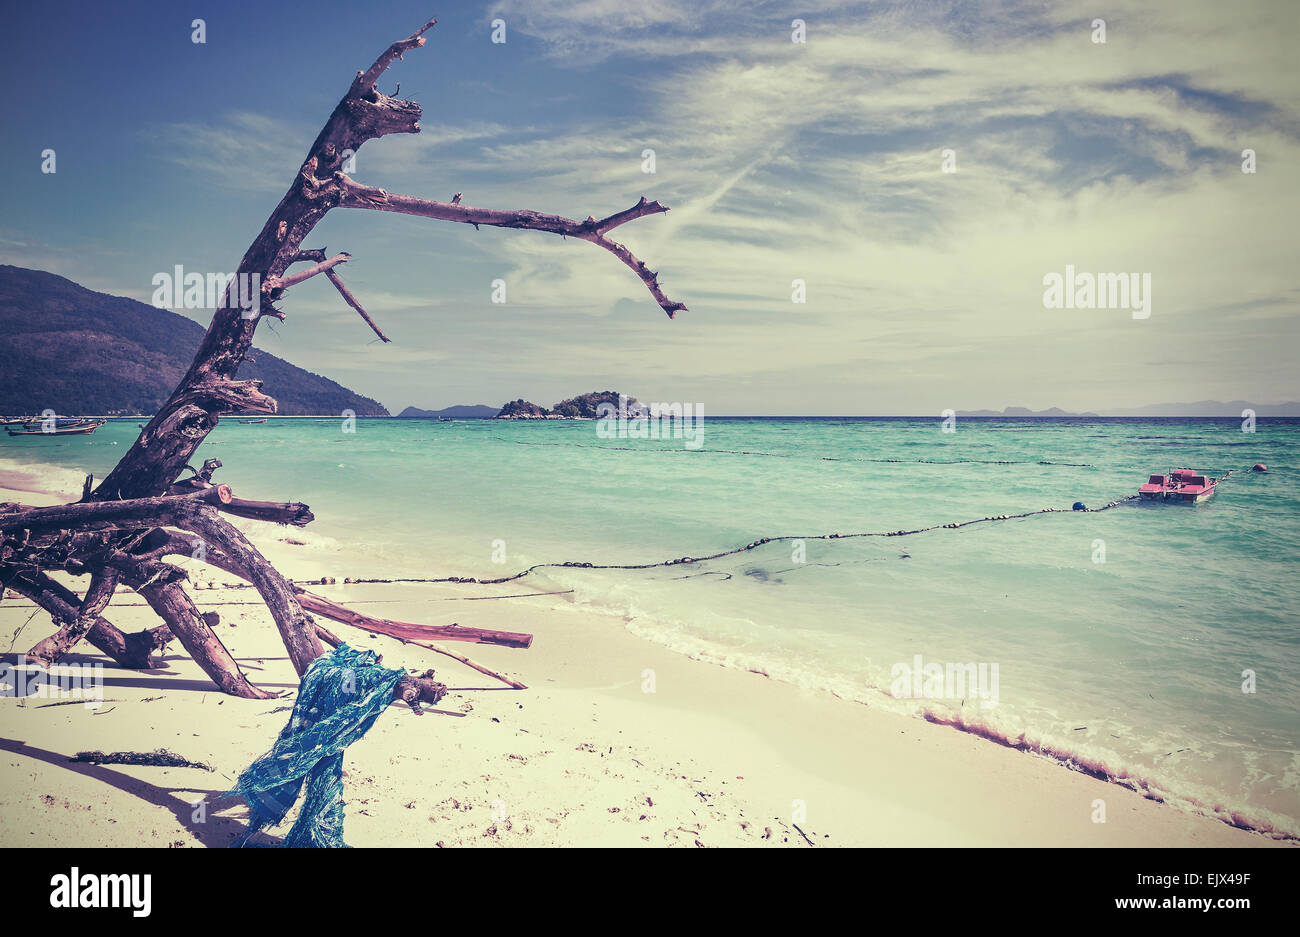 Retro vintage stylized picture of a beach; old grainy film effect. - Stock Image